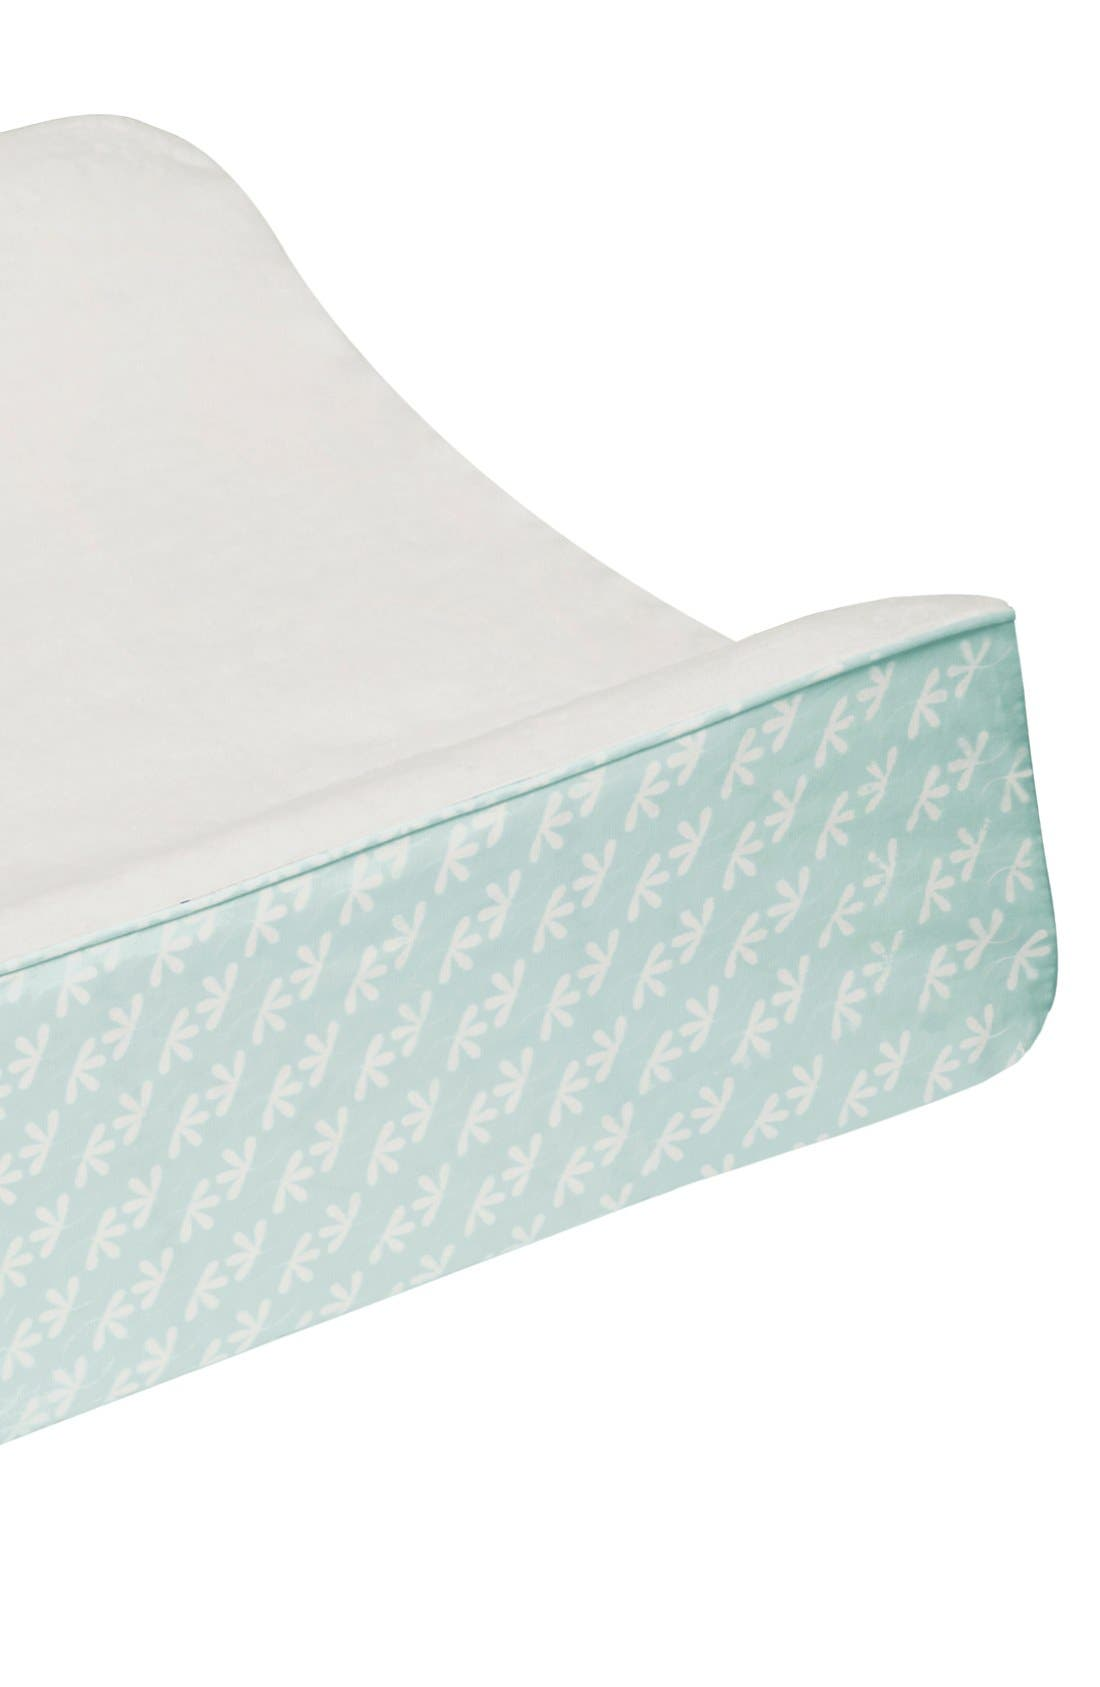 'Flora' Crib Sheet, Crib Skirt, Changing Pad Cover, Blanket & Wall Decals,                             Alternate thumbnail 6, color,                             Blue